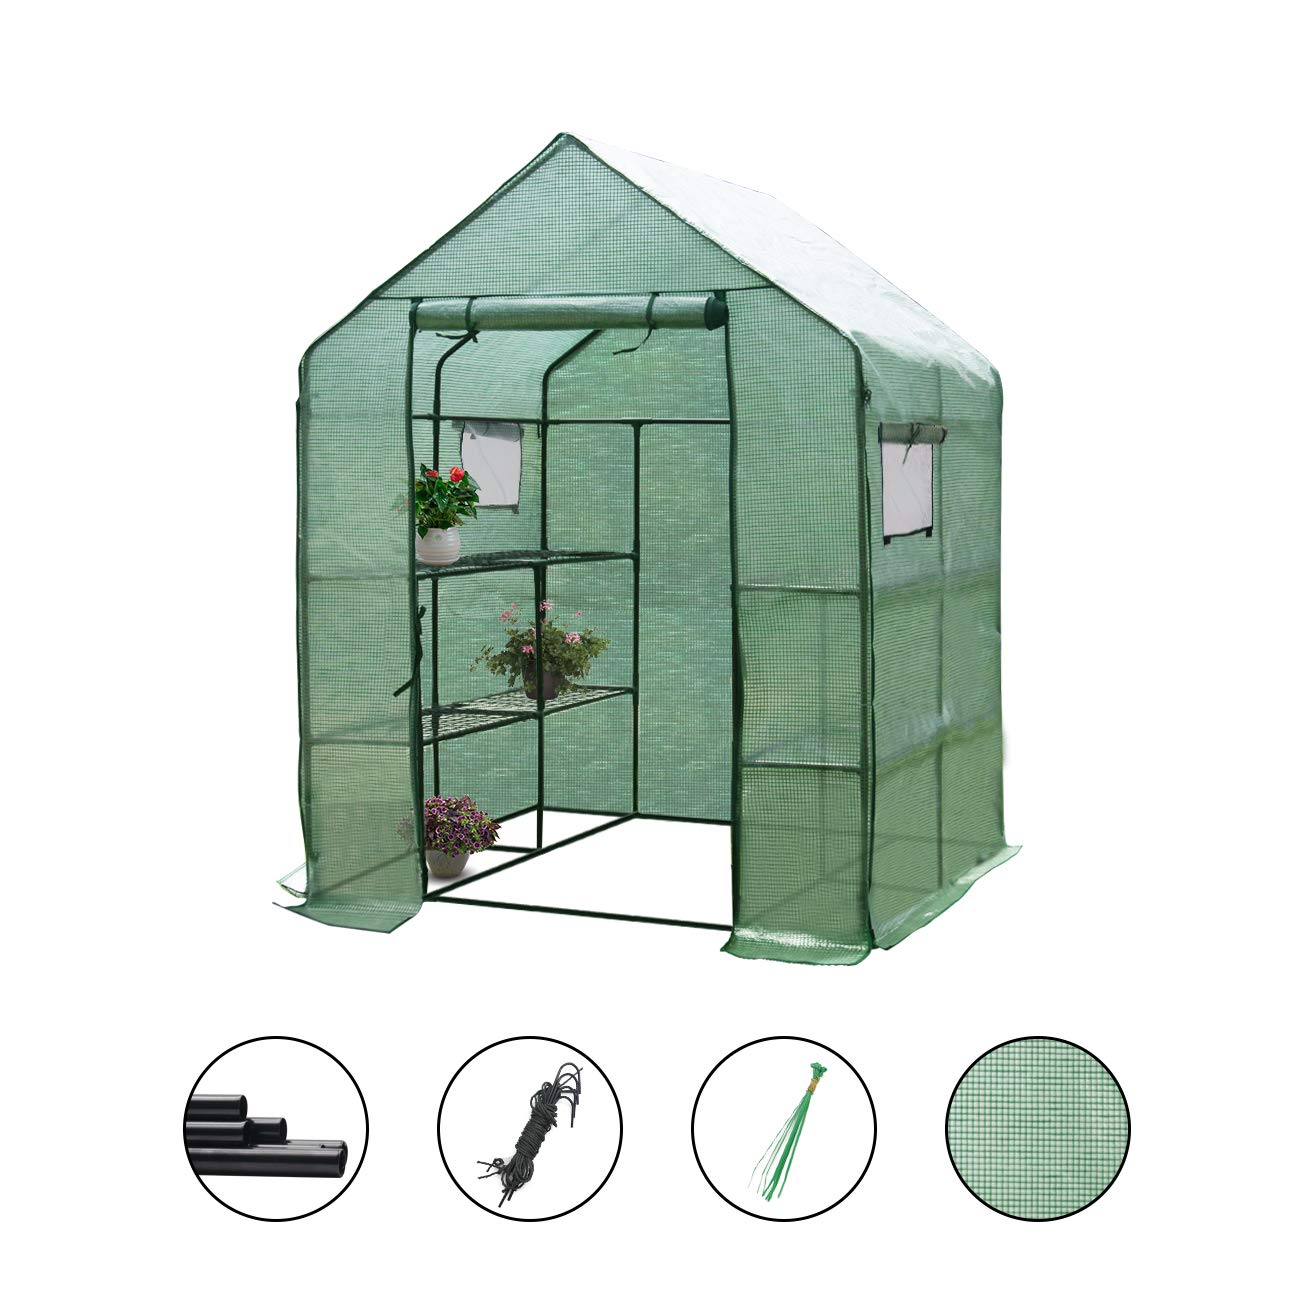 Large Walk-in Greenhouse With PE Cover 57'' L x 57'' W x 77'' H, 3 Tier 8 Shelves,Window Version and Roll-Up Zipper Door, Waterproof Cloche Portable Green house,Outdoor Gardening Organic Greenhouse by LYNSLIM (Image #1)